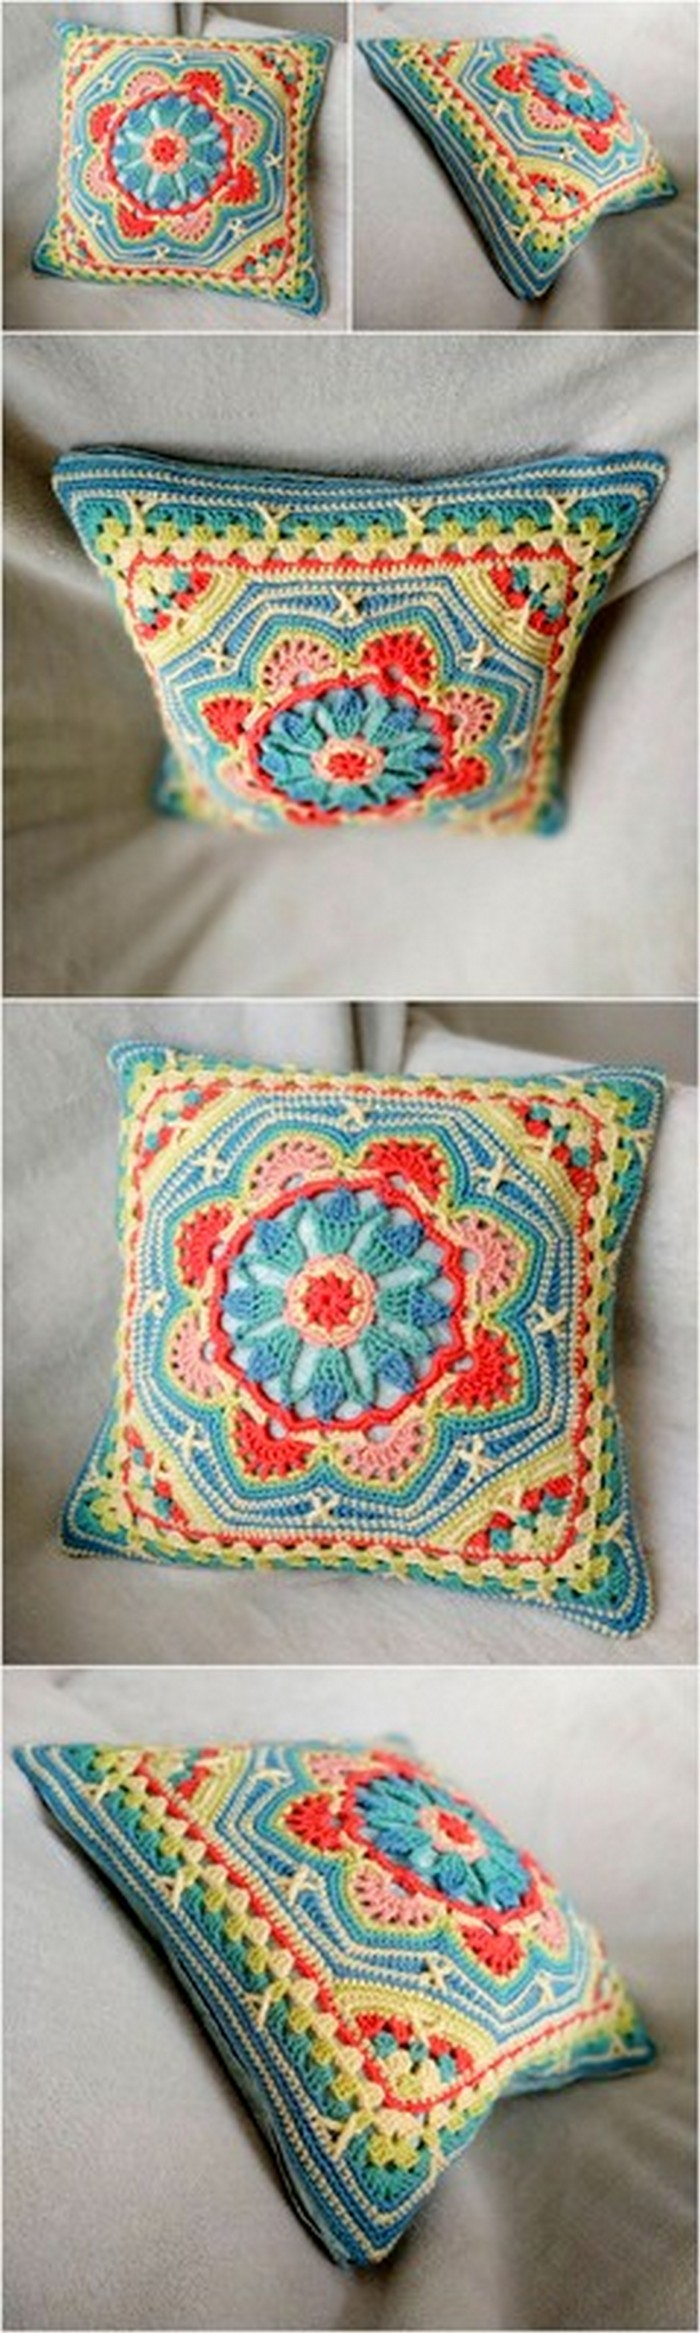 traditional style crochet cushion cover